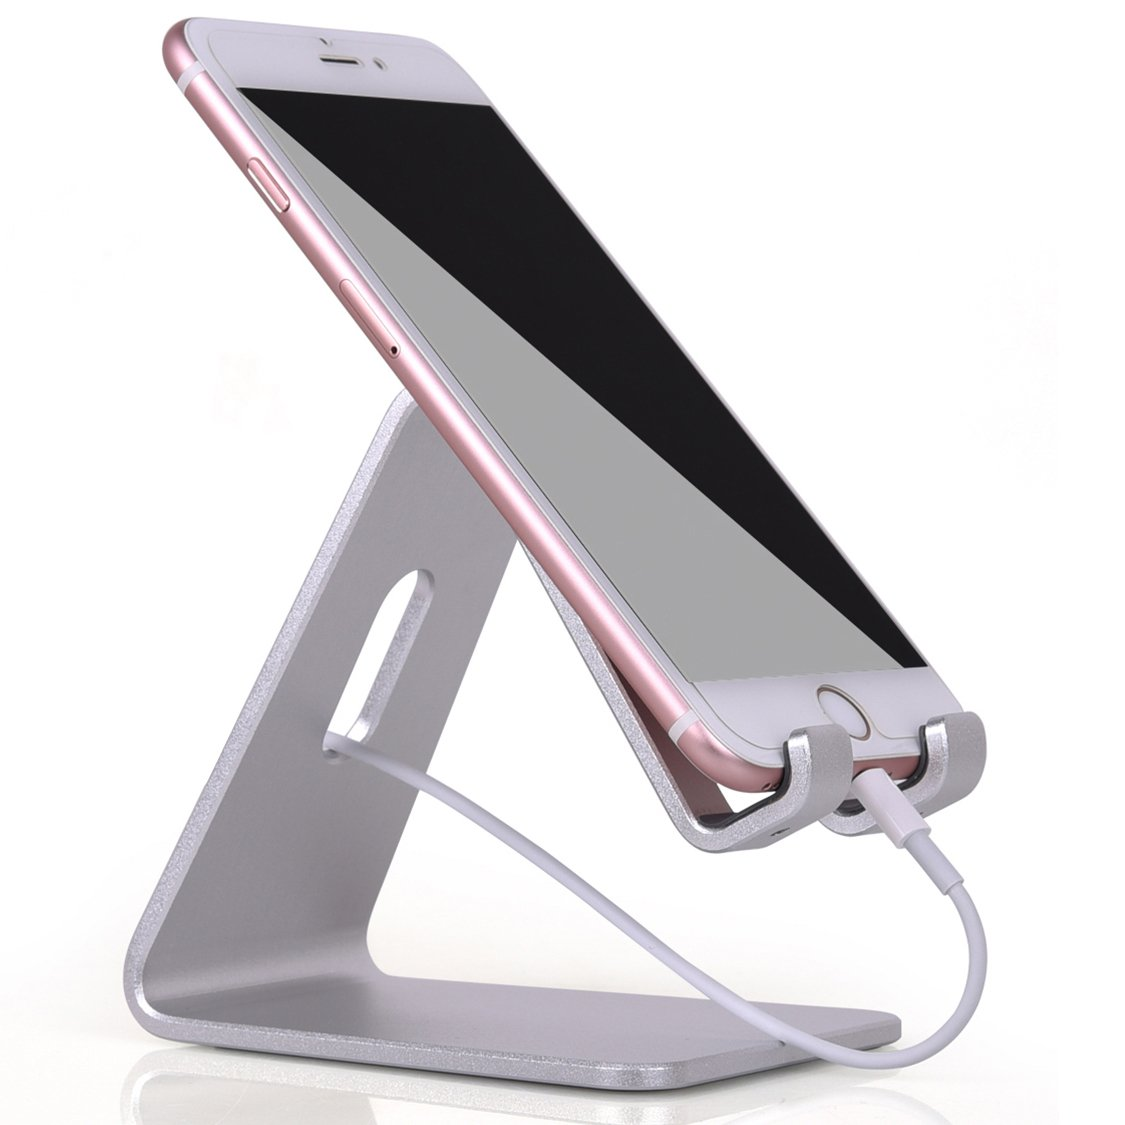 Cell Phone Stand, KAERSI K1 iPhone iPad Universal Stand Holder, Desk Dock  Mount for